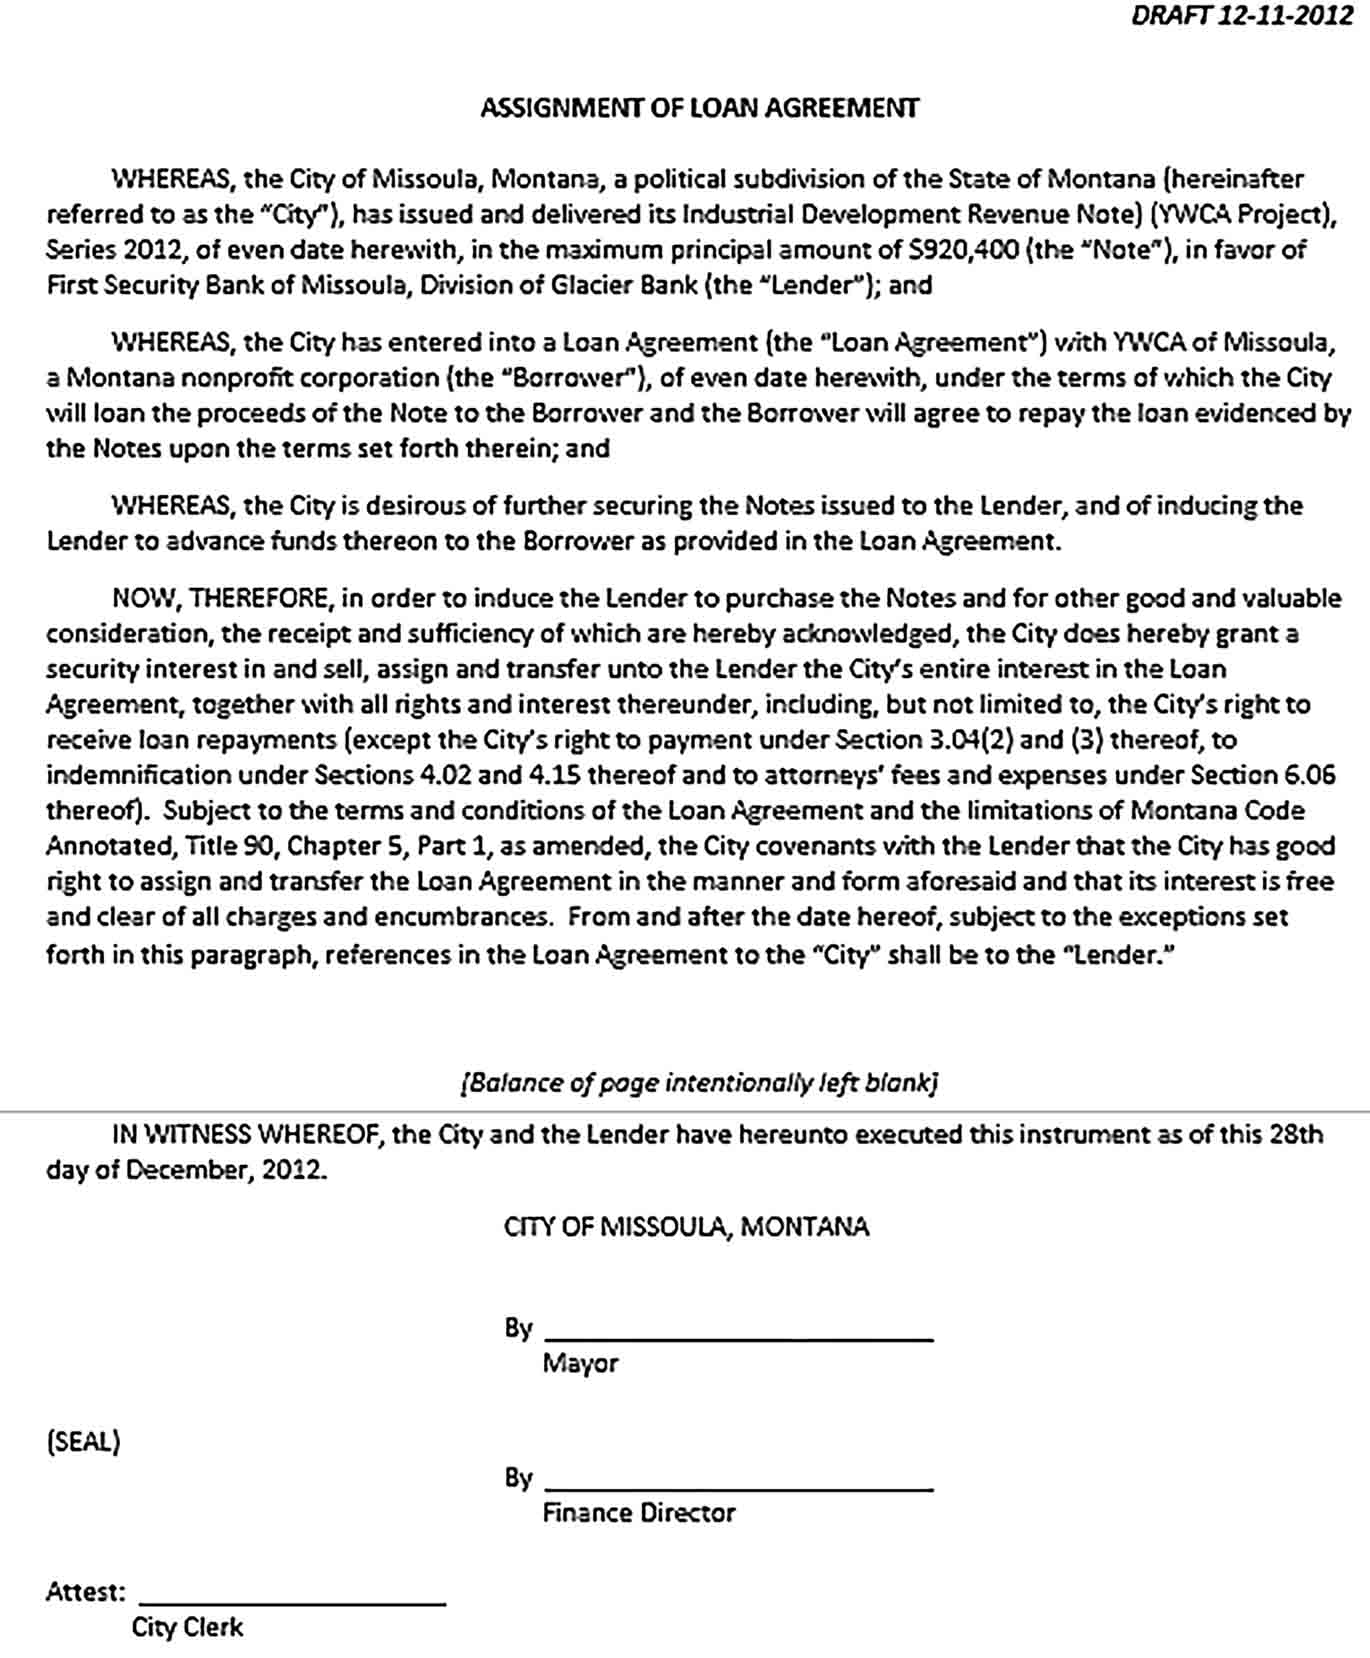 Sample Loan Assignment Agreement